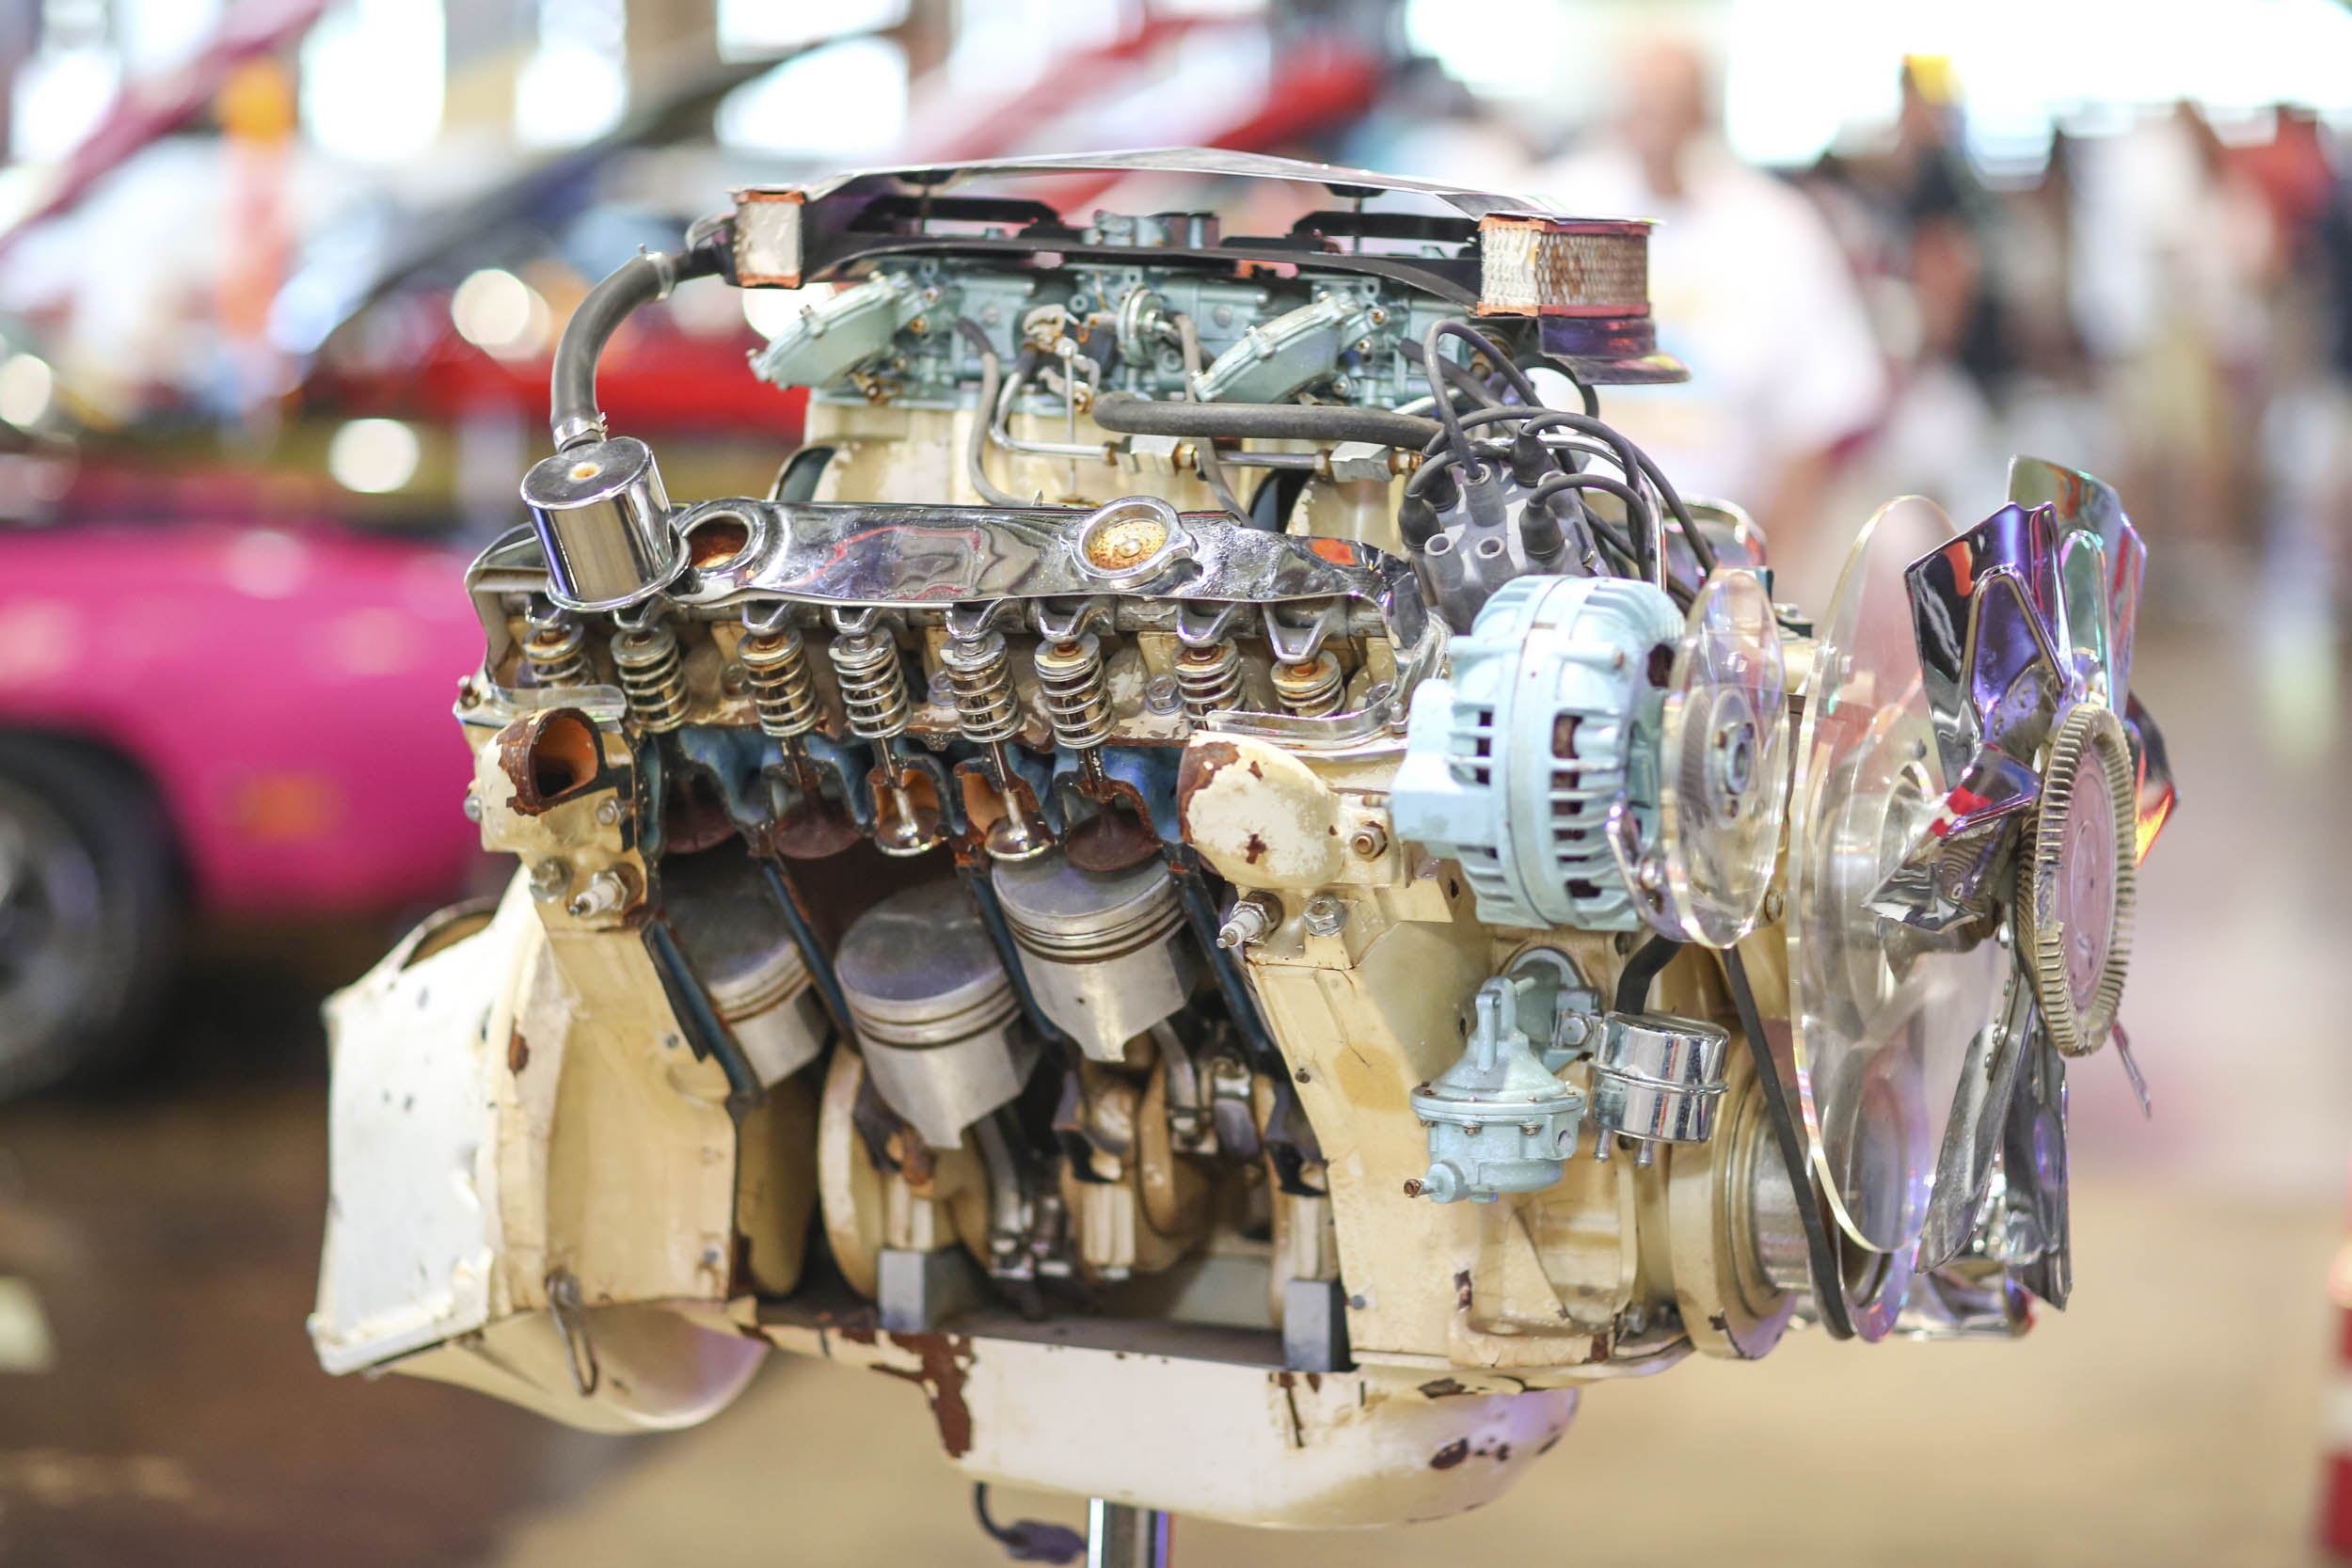 The whereabouts of this 440 Six Pack cutaway engine, built for Chrysler as an auto show display model, were unknown until the owner offered it for sale to Tim. There's also a cutaway street Hemi and race Hemi in the museum.